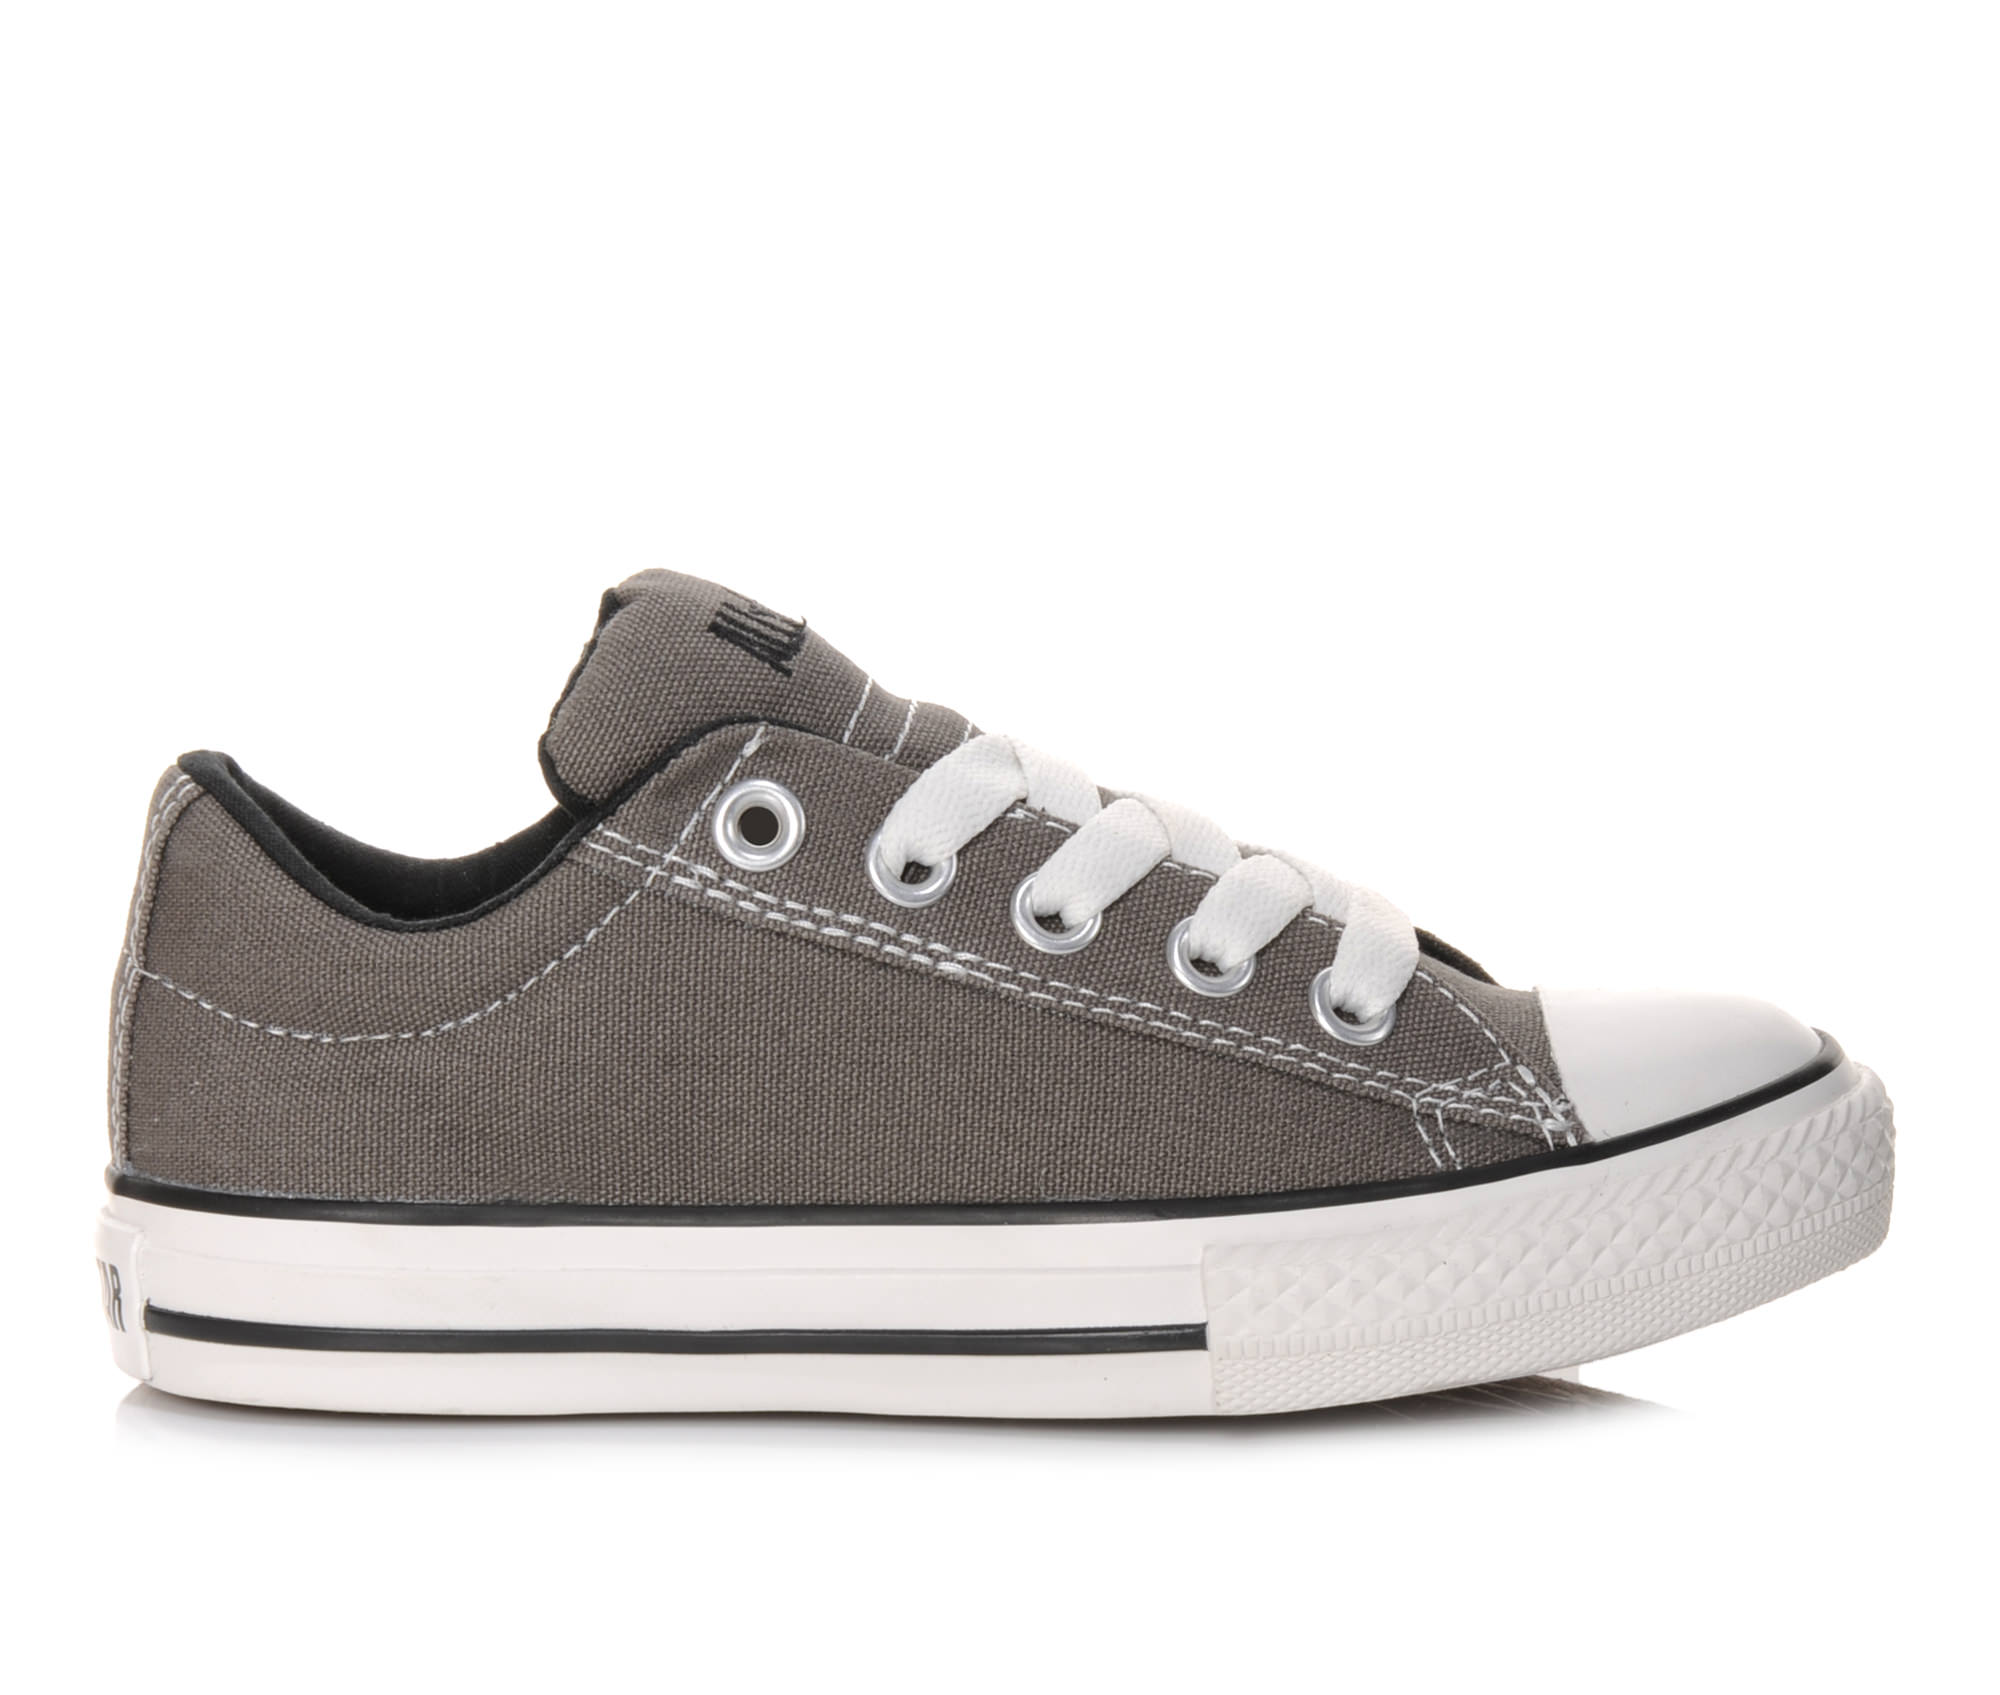 Girls' Converse Chuck Taylor All Star Street Ox Sneakers (Grey)